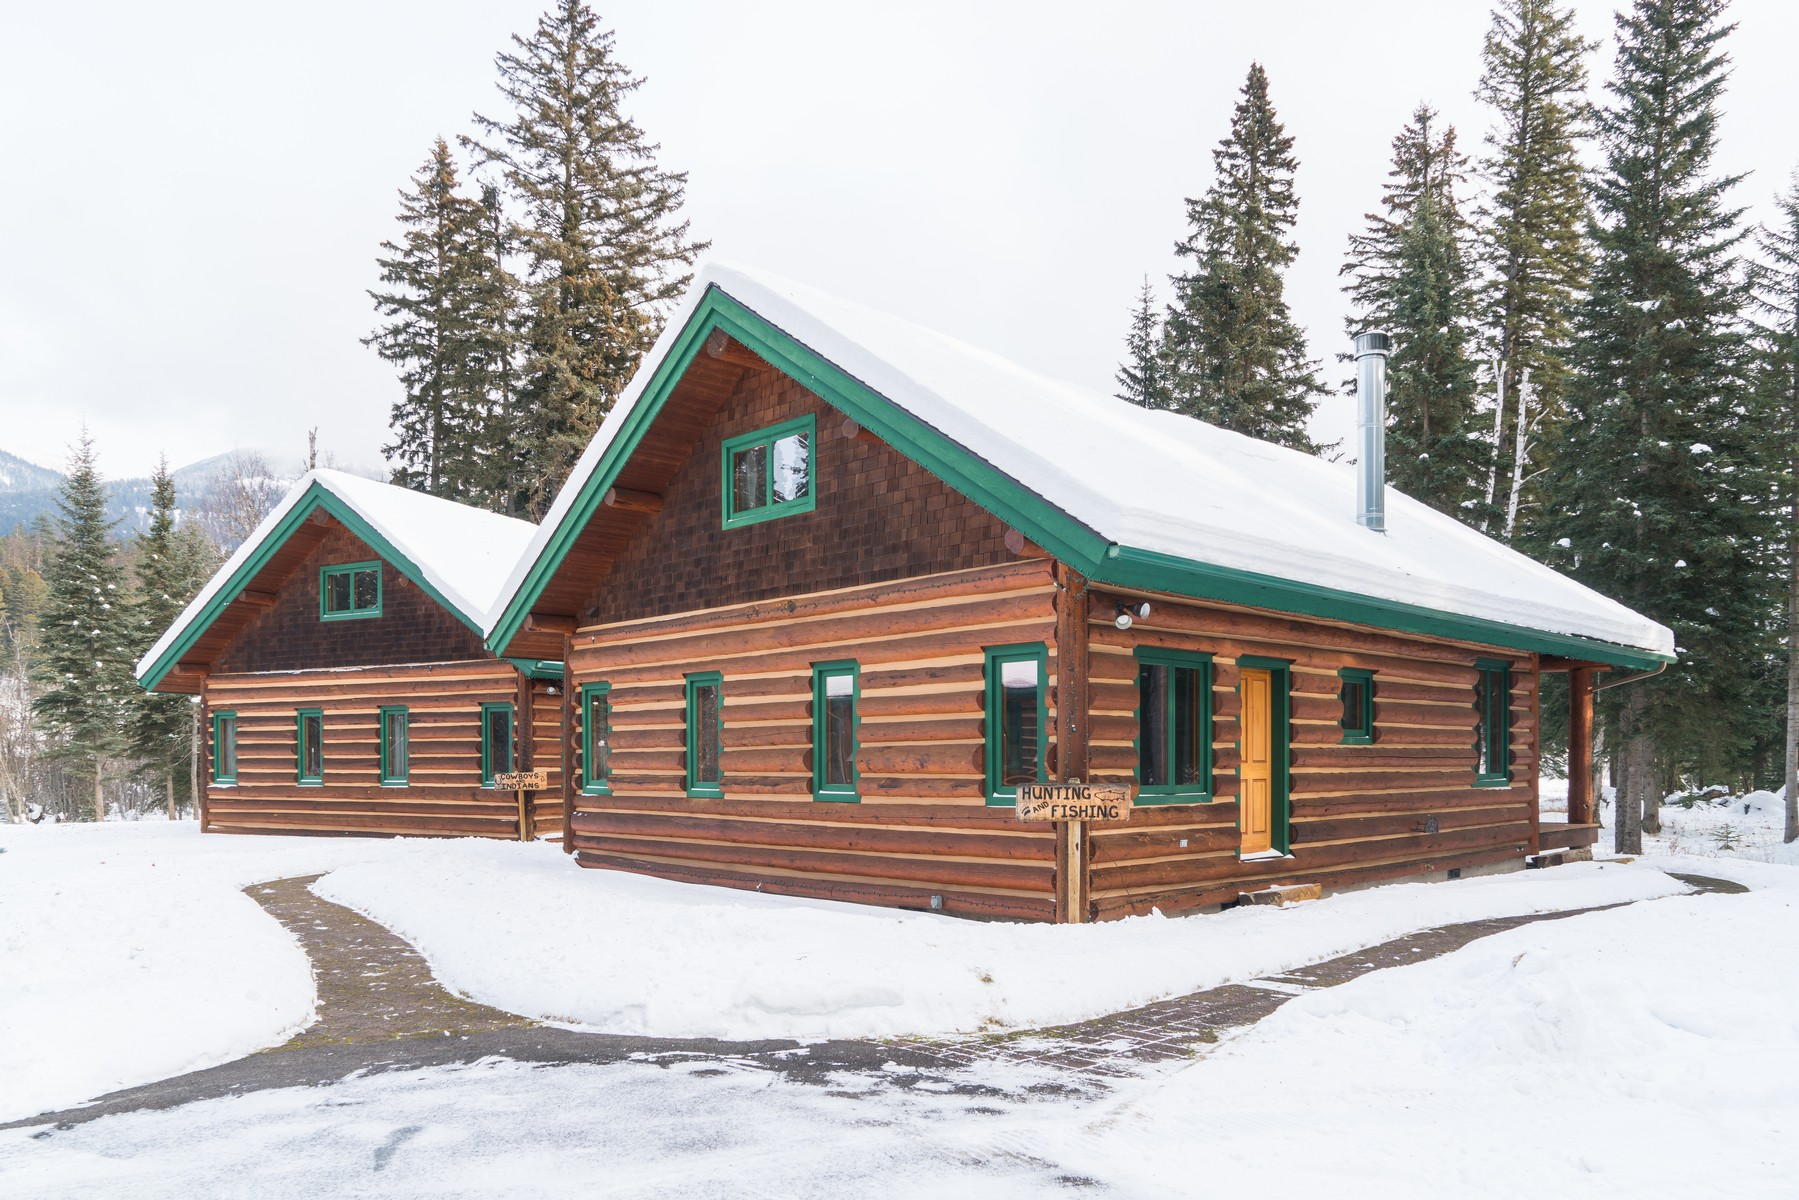 Additional photo for property listing at 365 Delrey Rd , Whitefish, MT 59937 365  Delrey Rd Whitefish, Montana 59937 United States